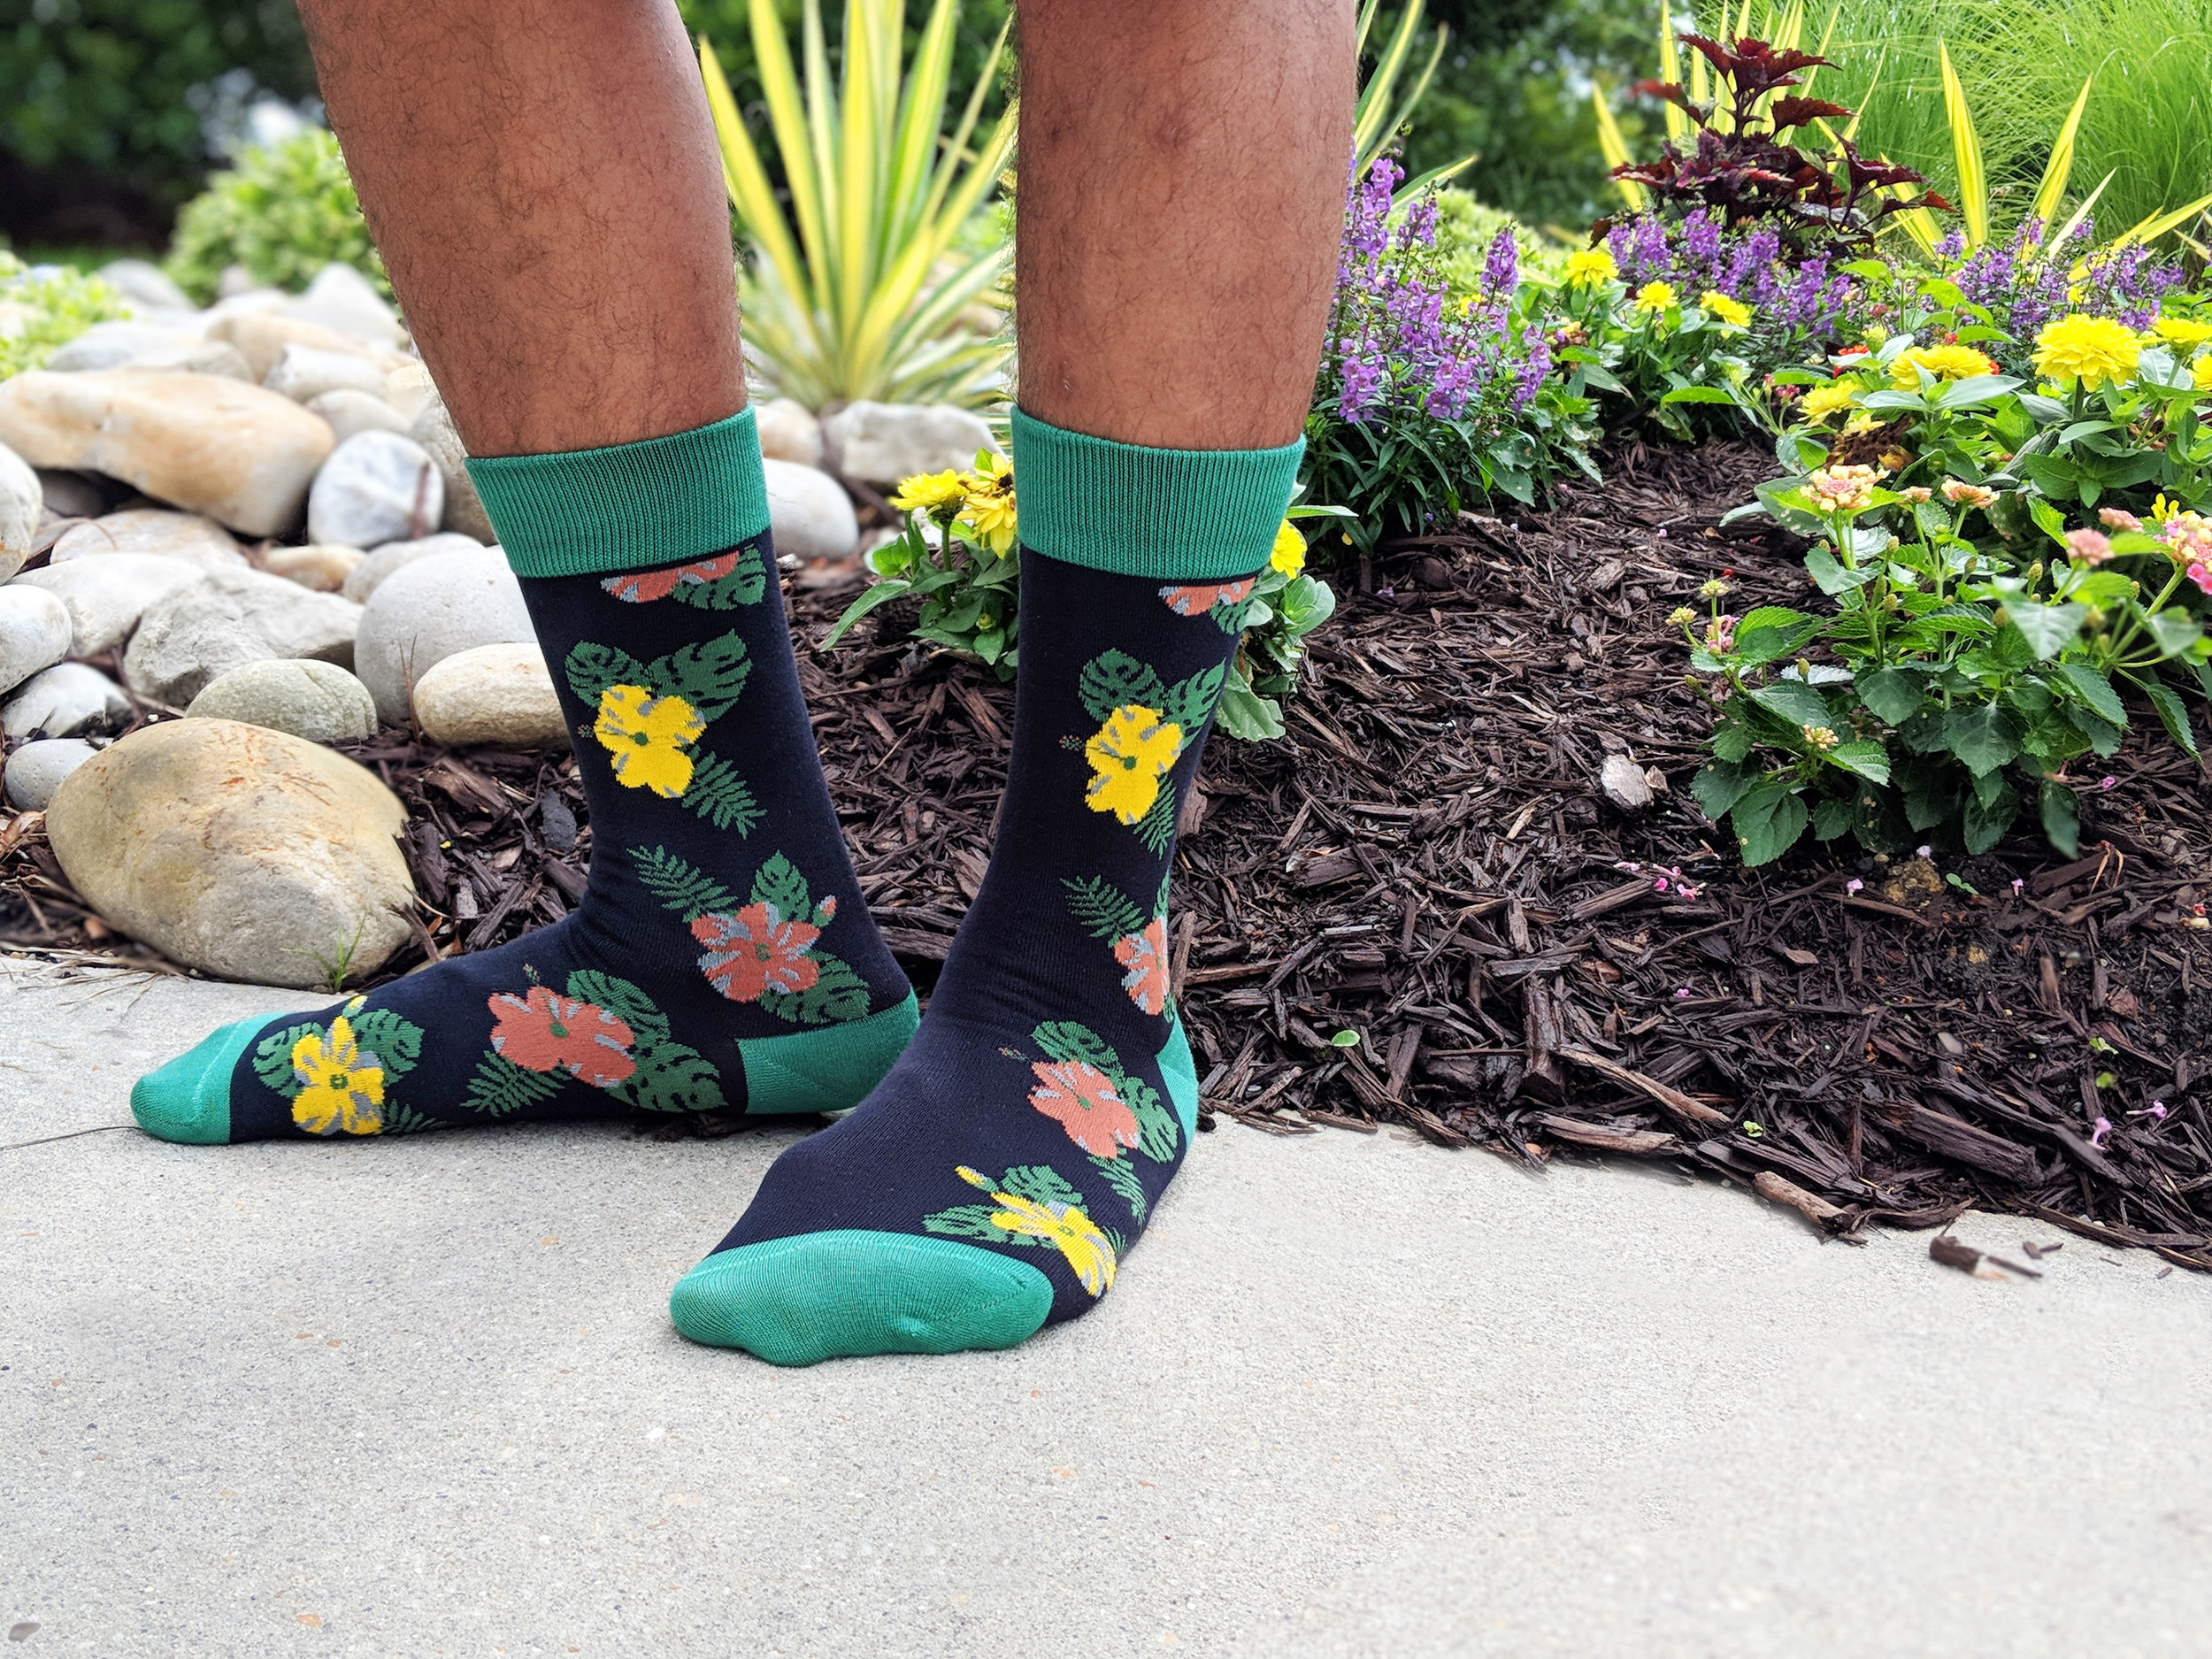 The Wilde Floral style out in a 'fitting' environment; the hibiscus rose motif is well-done in a classic way. Photo Credit The Sock Review